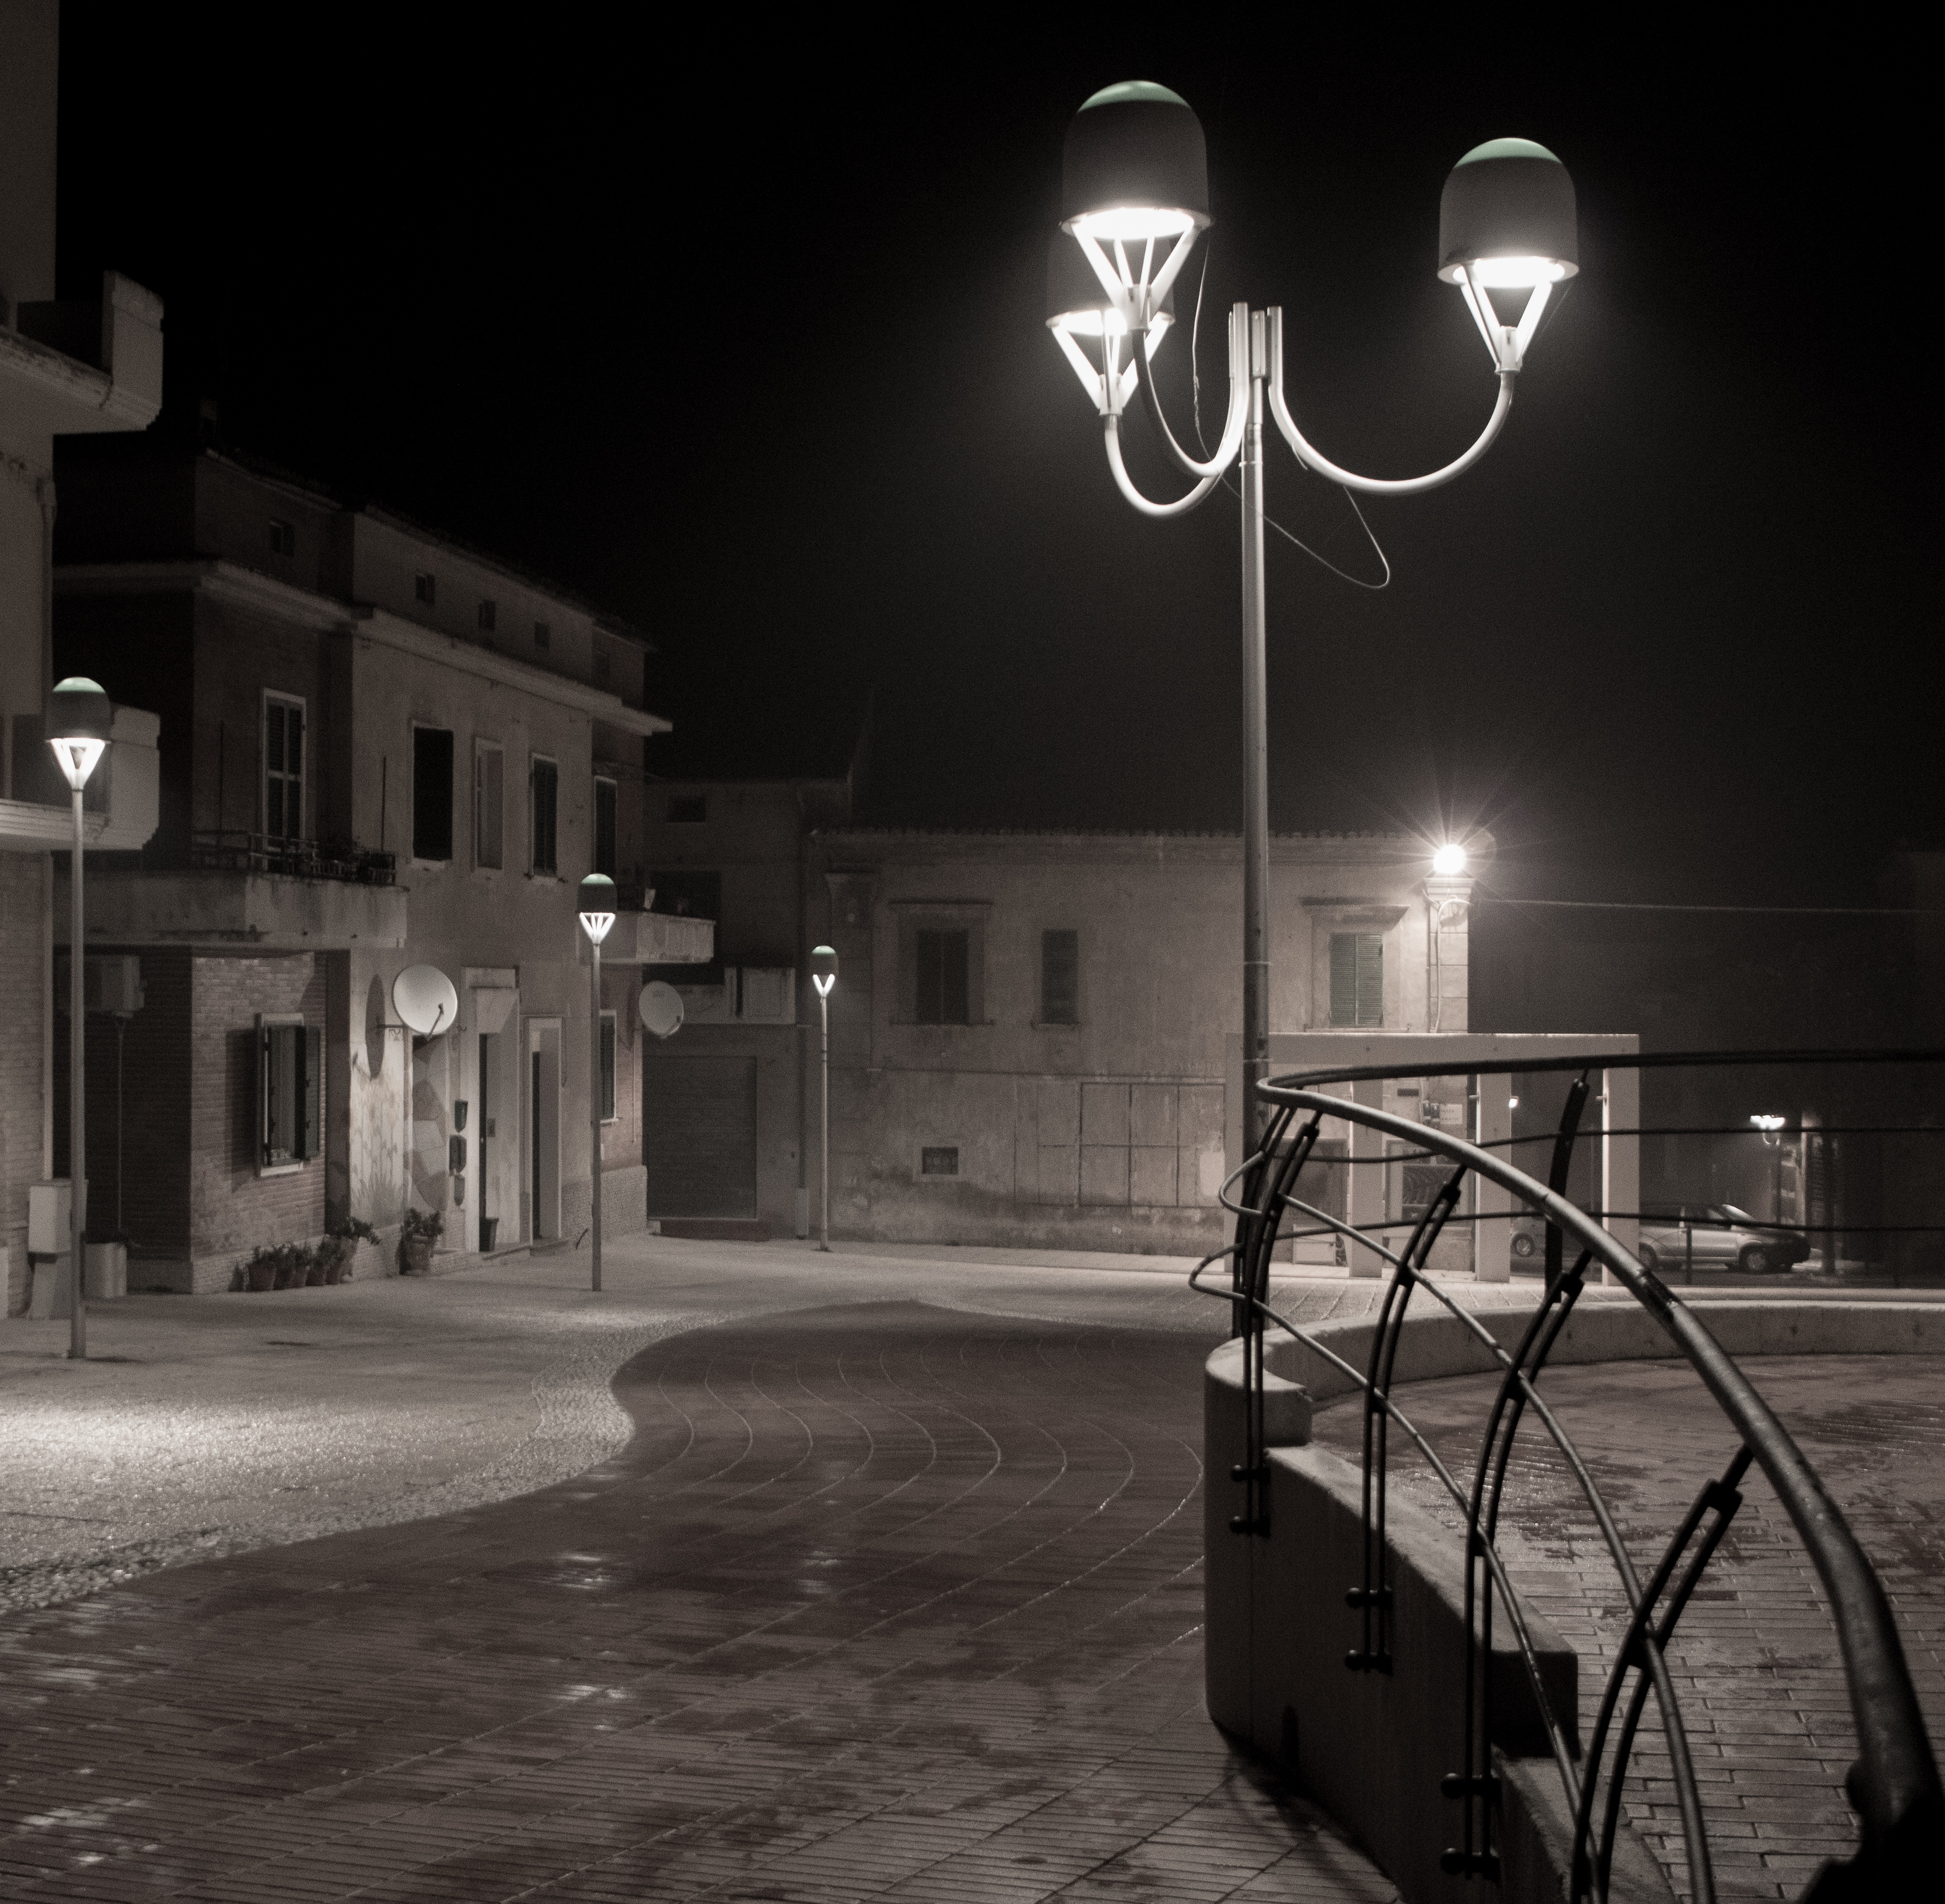 Cupello by night